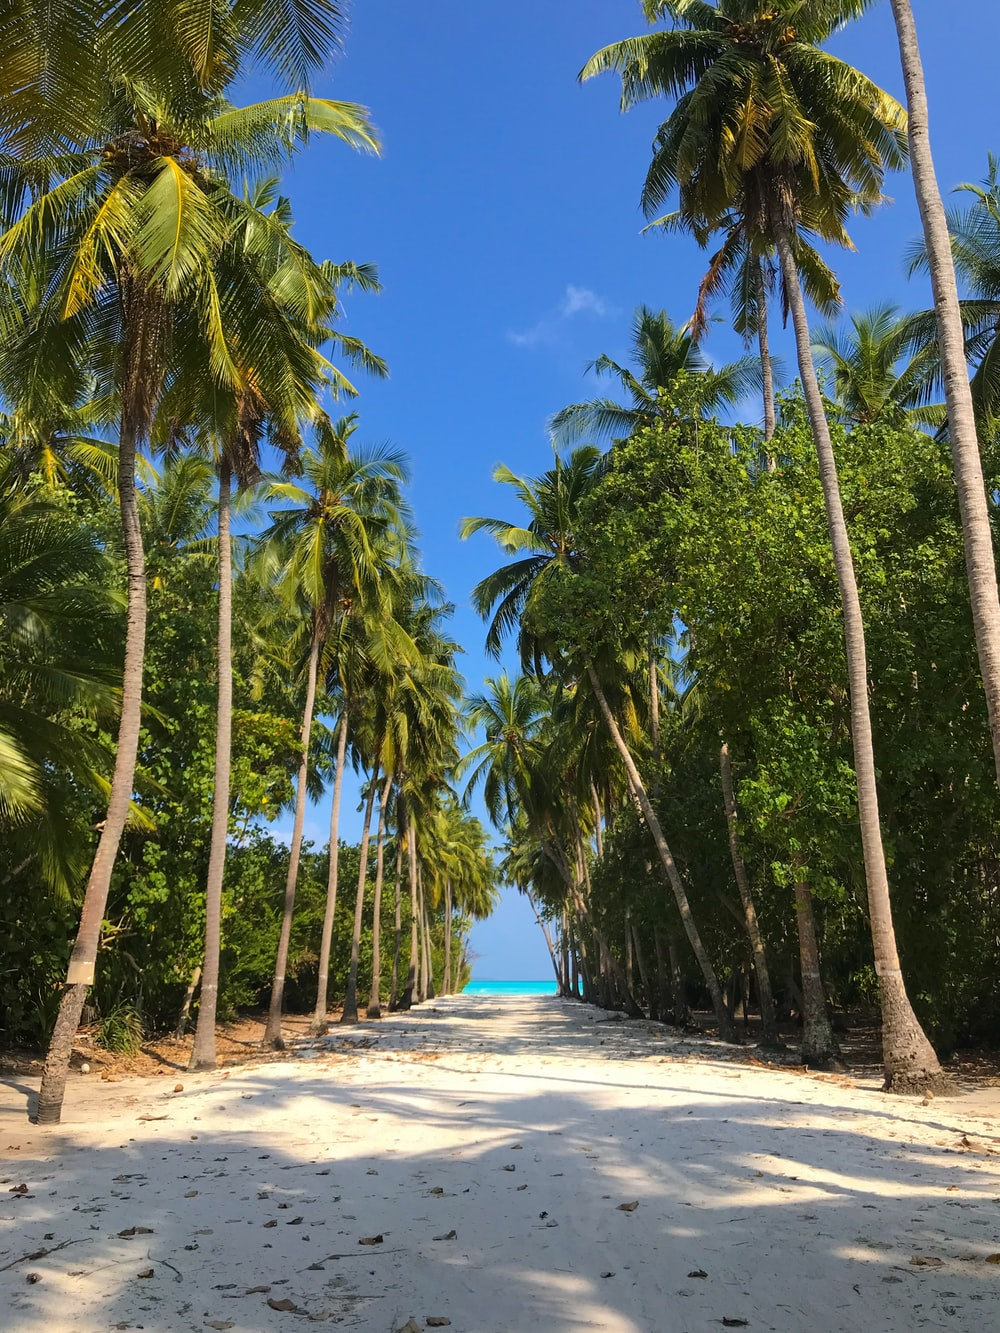 road lined with coconut trees